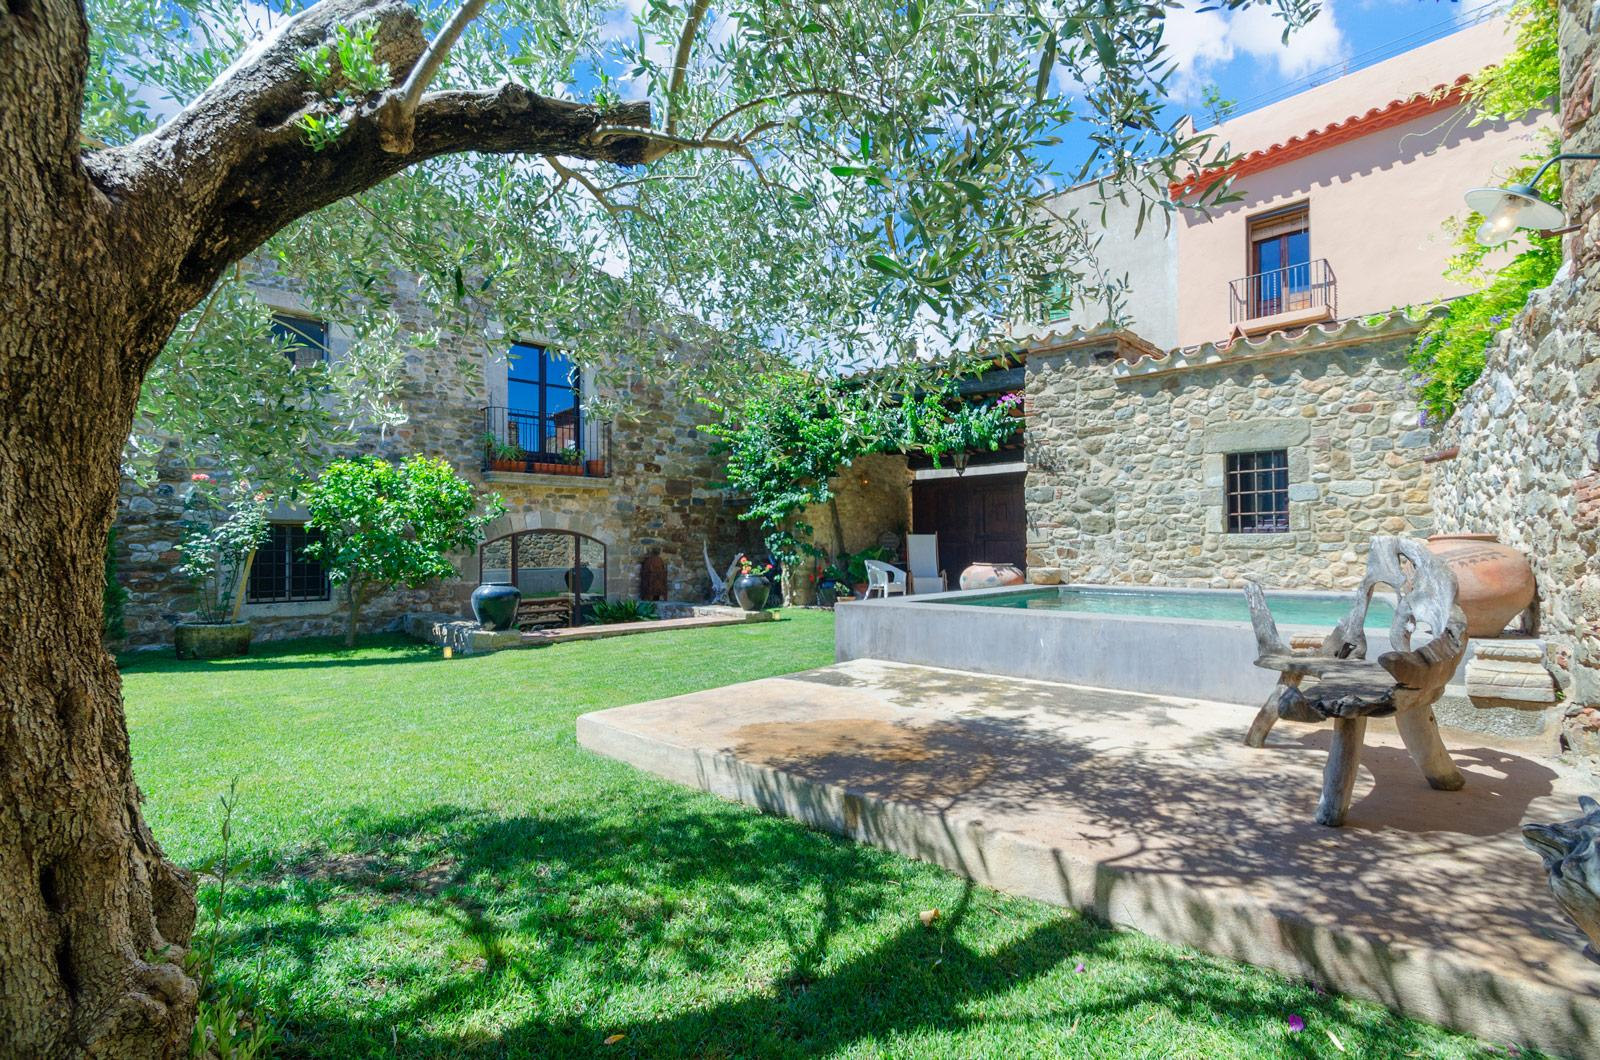 4. Villa for sale in Girona - Traditional Masia, Catalonia country house, for sale in Girona